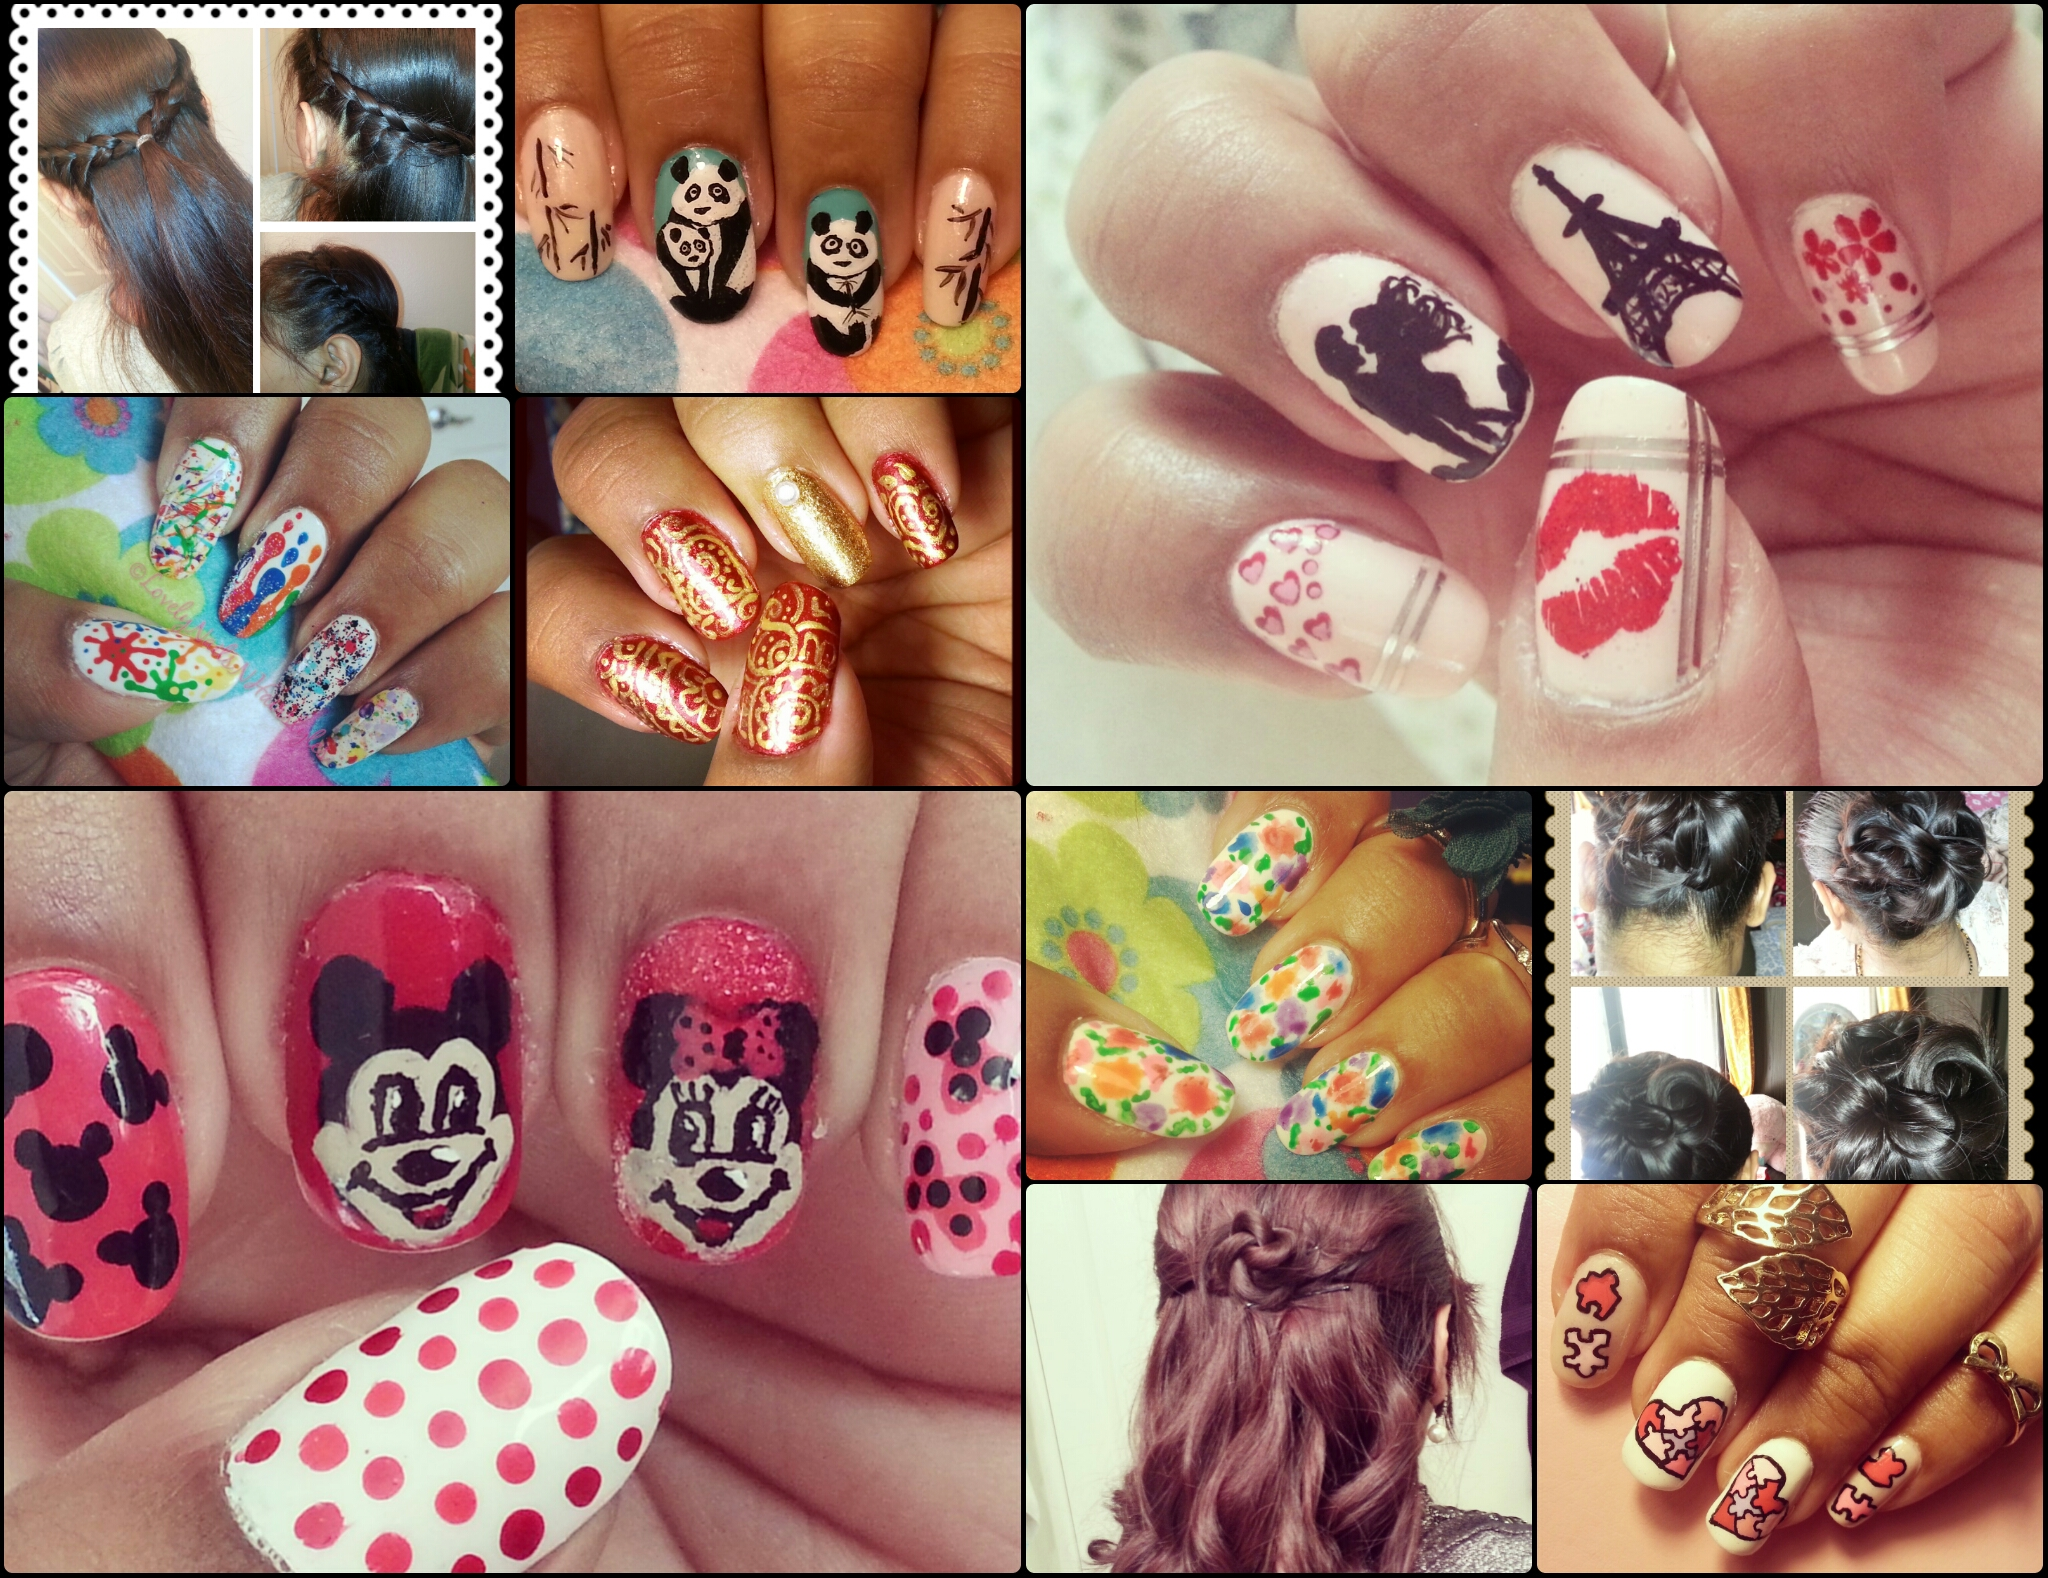 Creations of LovelyNailsNPrettyHairstyles